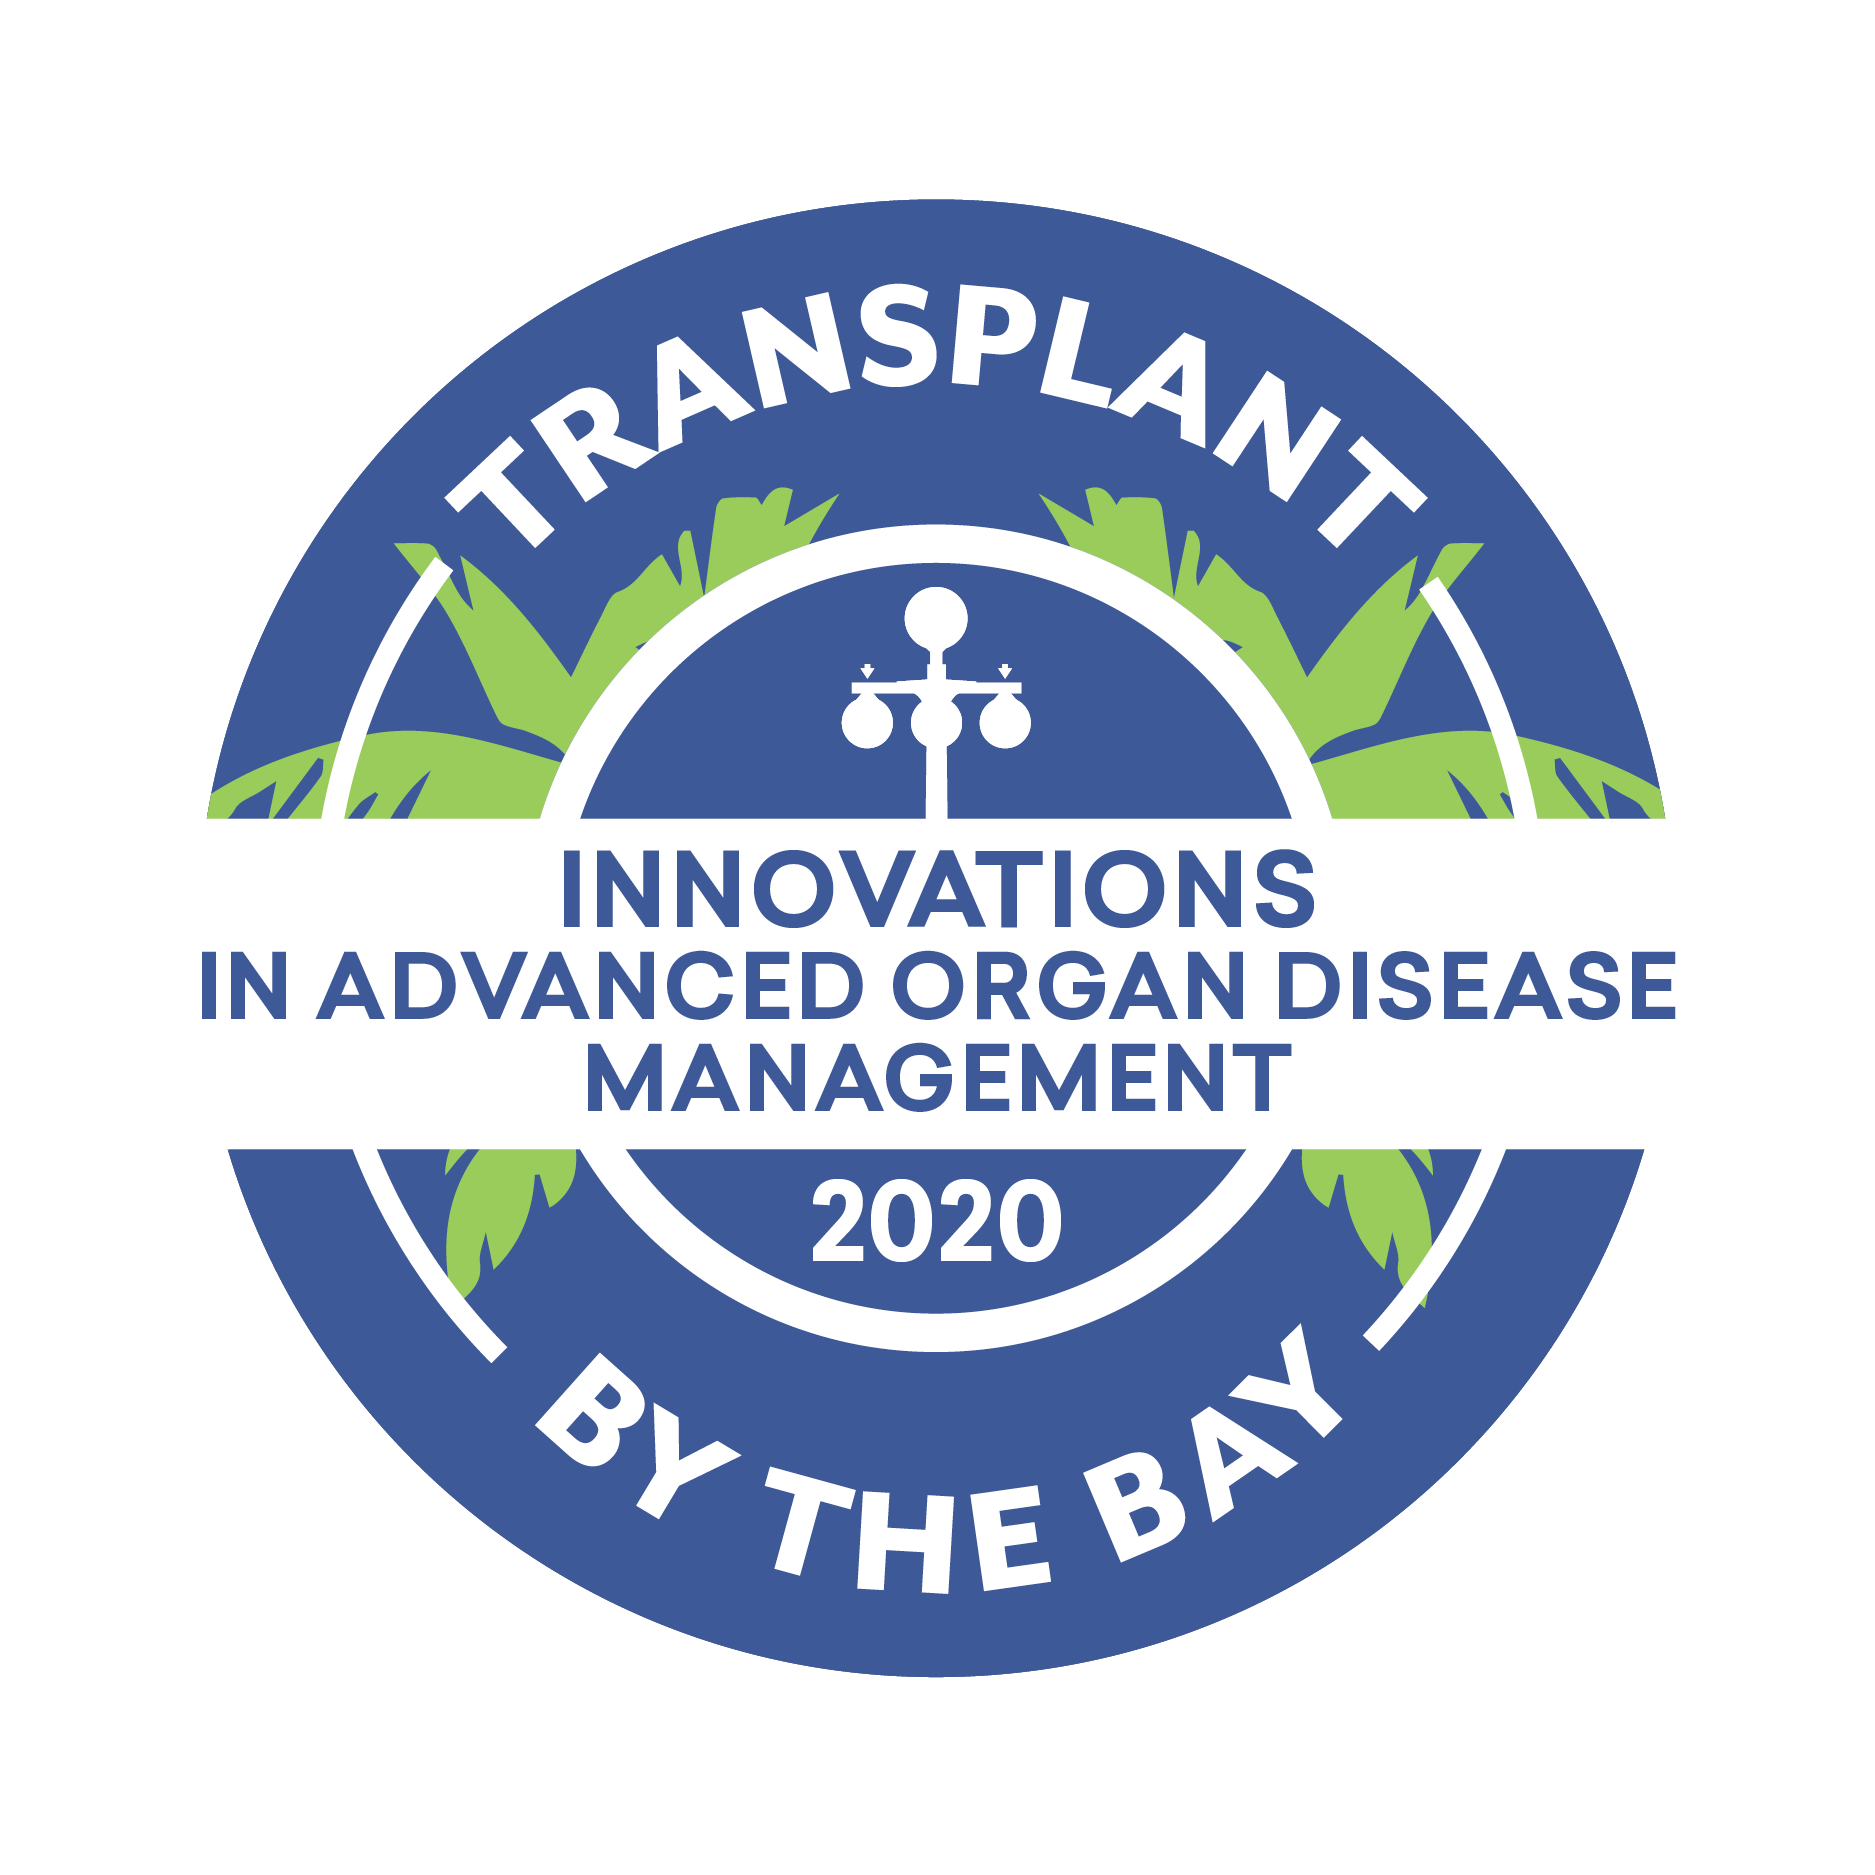 Transplant by the bay logo